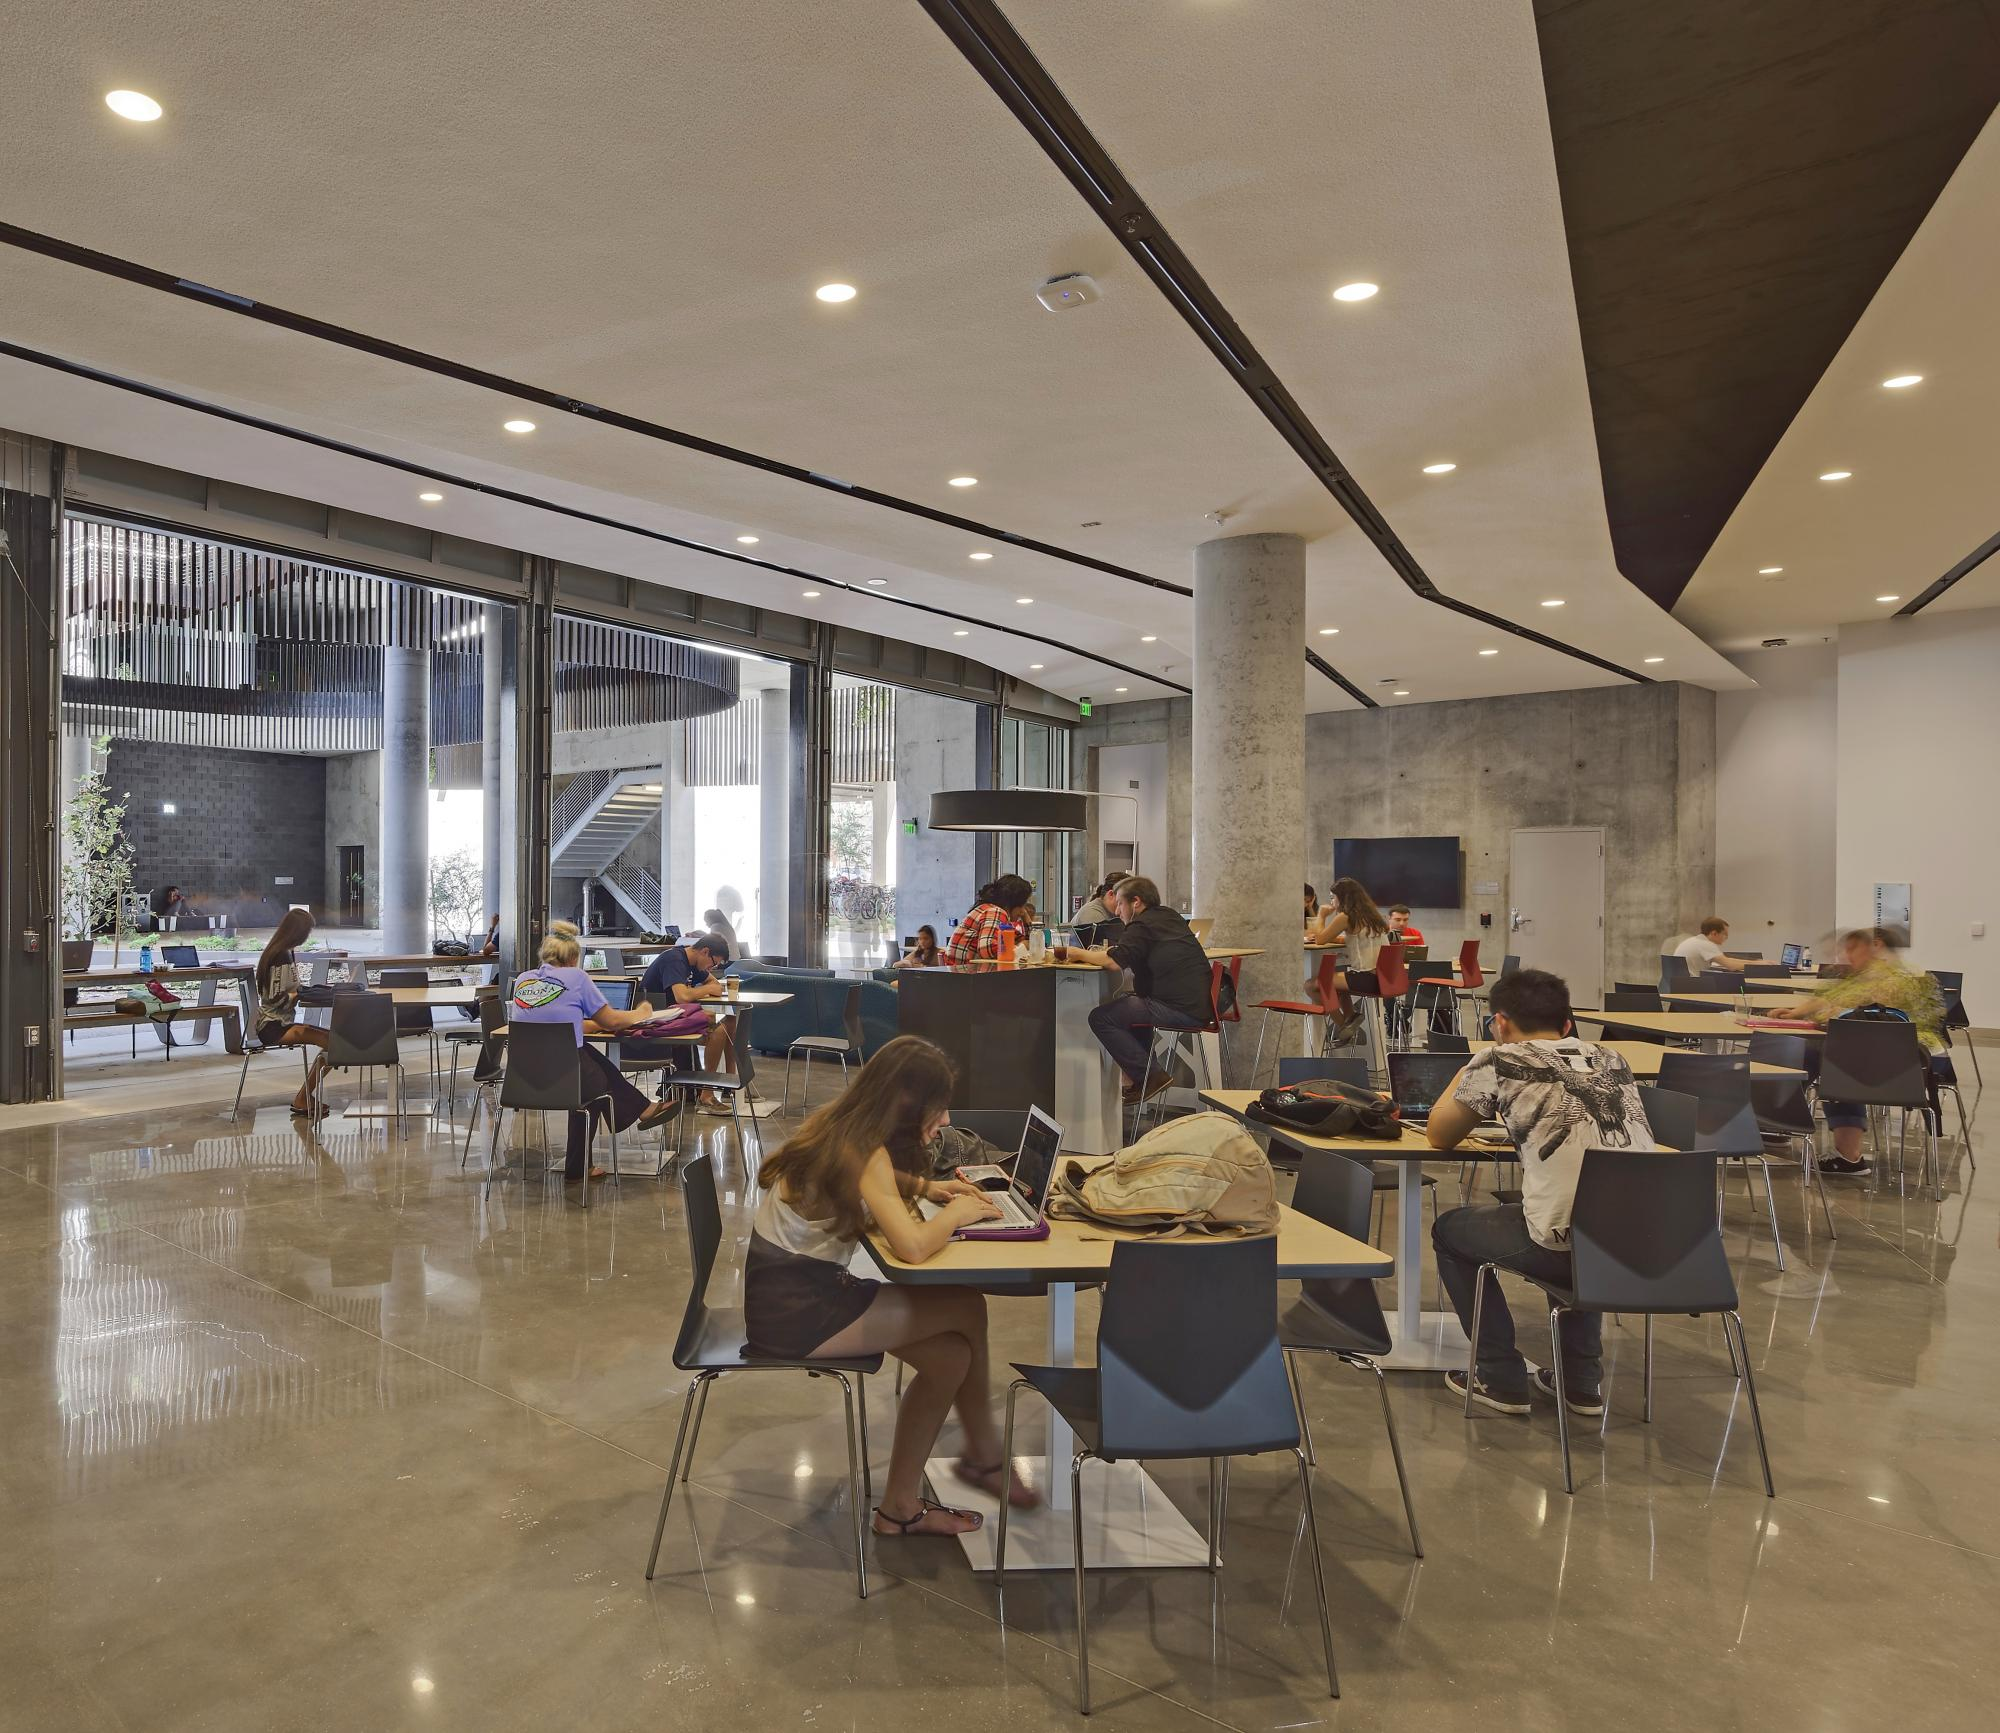 ENR2 has a UA Student Unions-operated café, the Slot Canyon Café. ENR2 is also home to the Institute of the Environment, School of Geography and Development, School of Natural Resources and the Environment, and certain divisions of the Department of Mathe